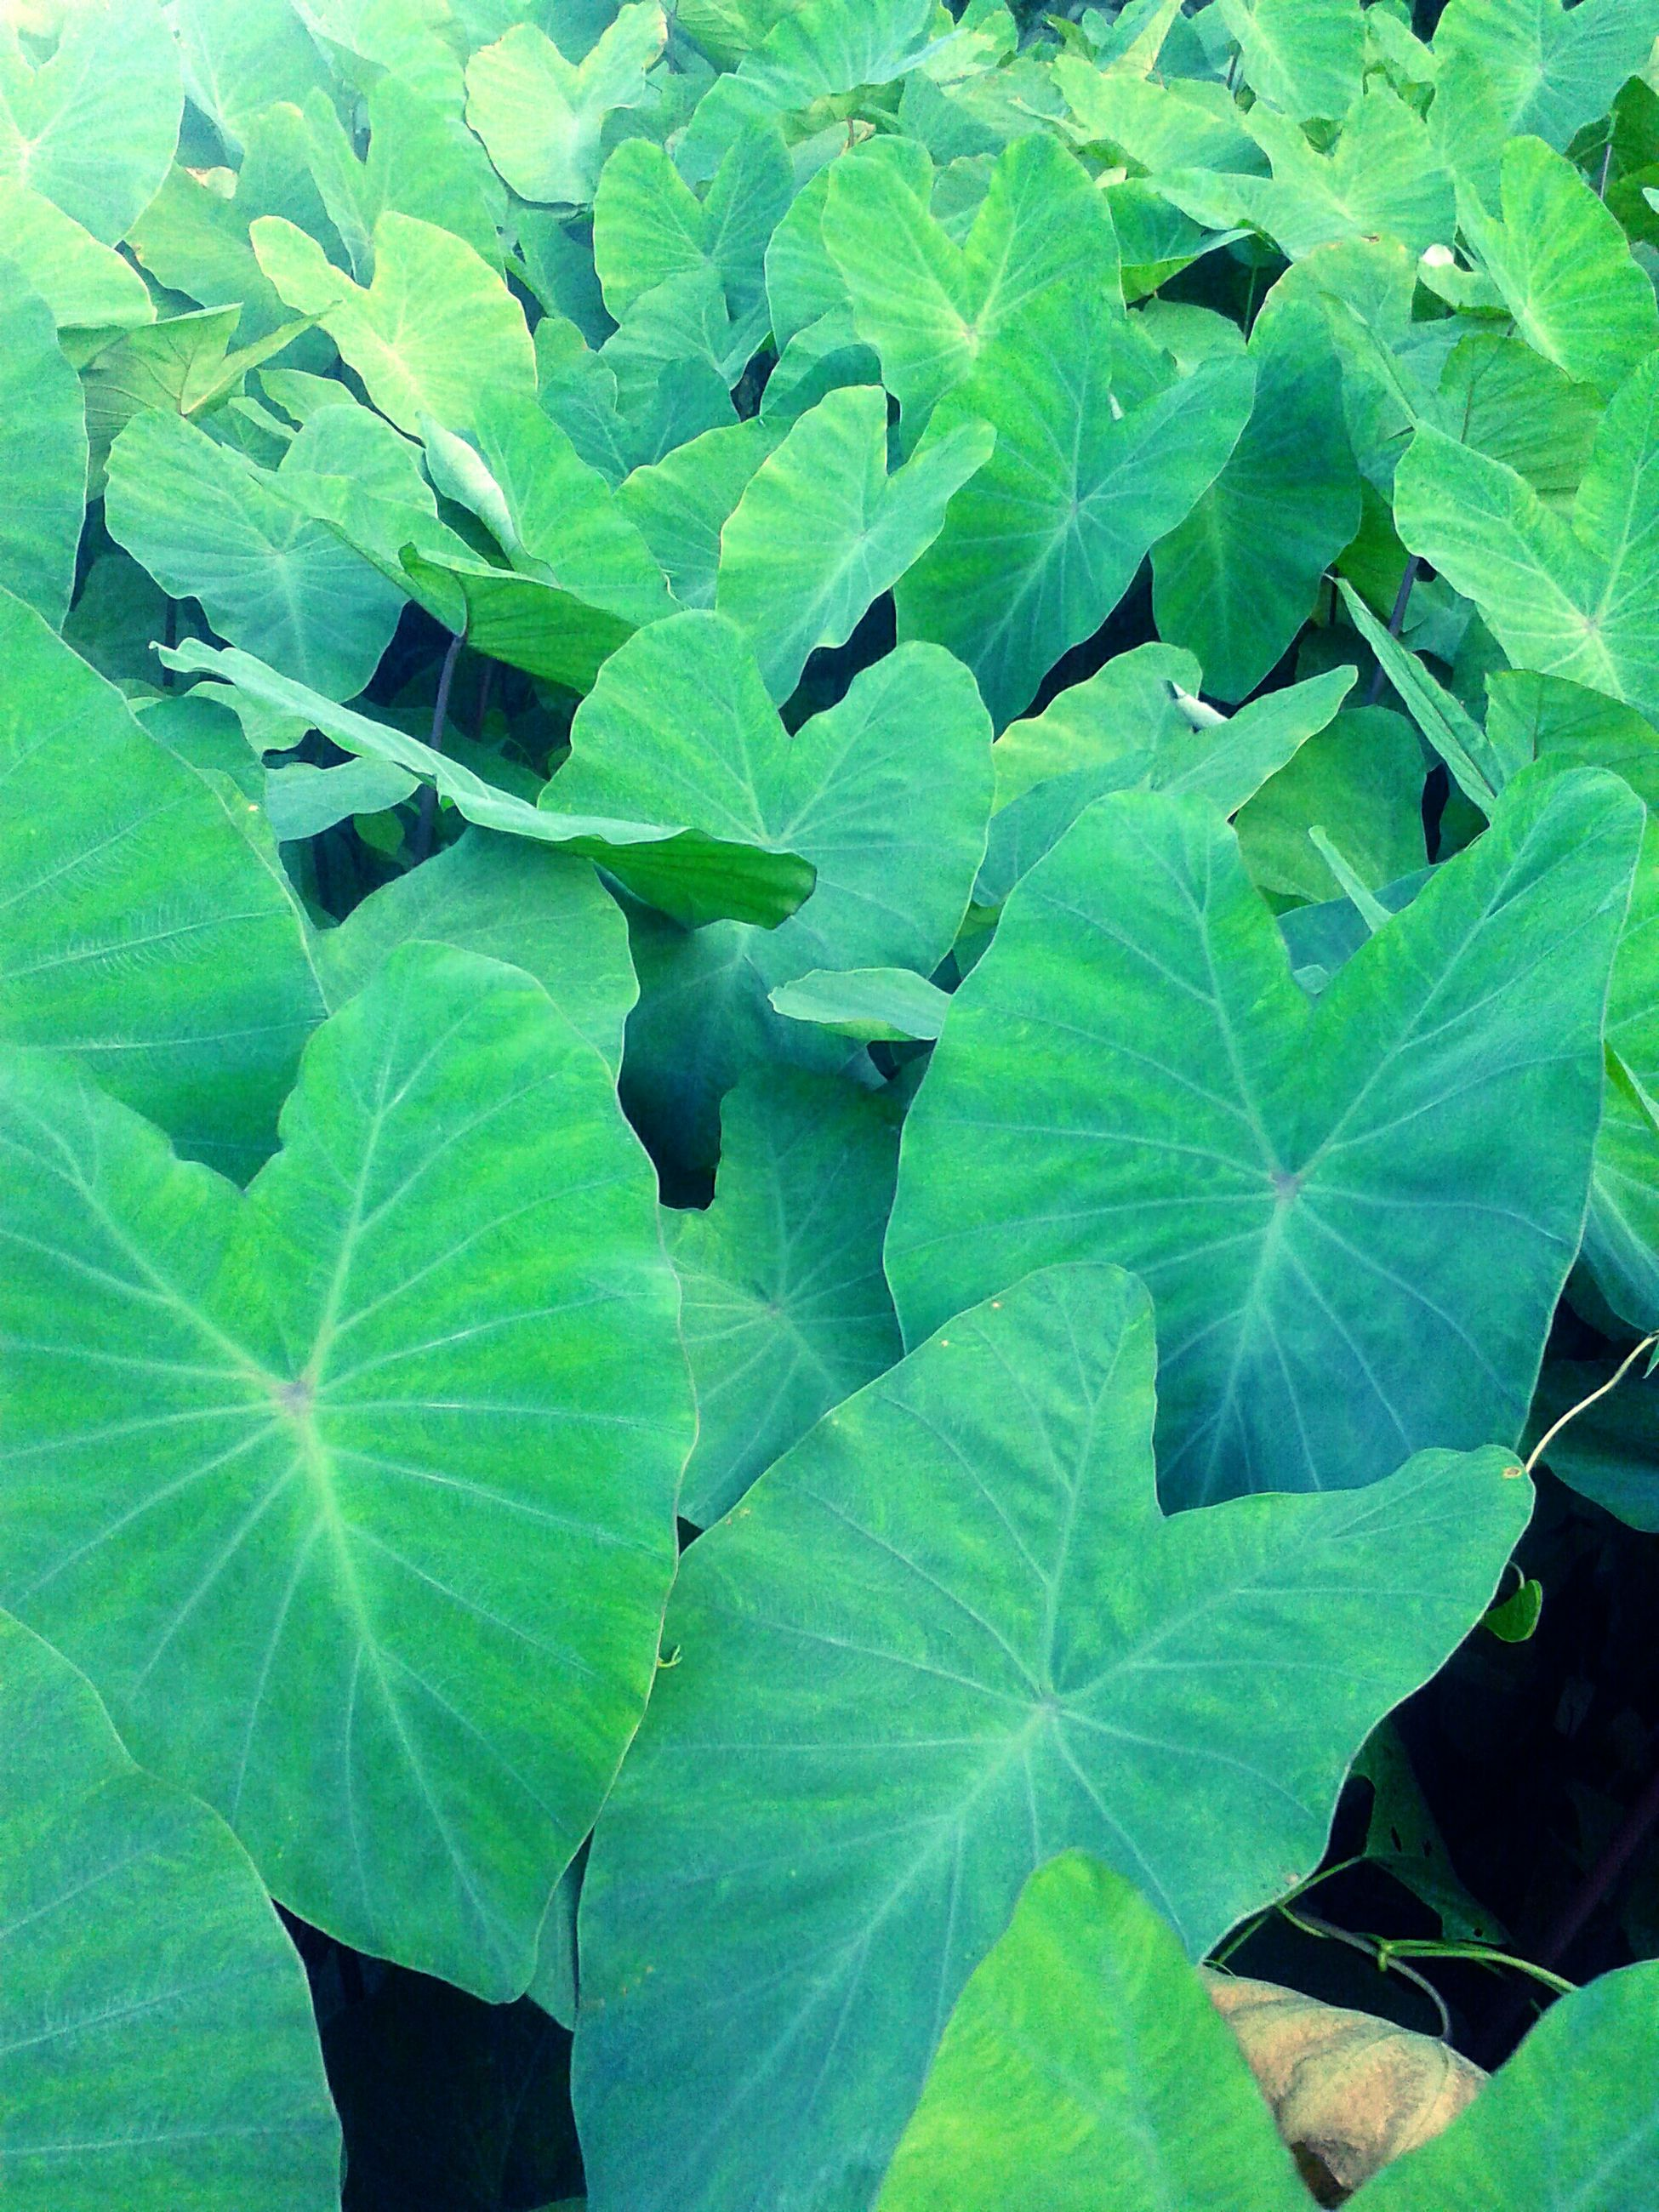 leaf, green color, leaf vein, leaves, growth, plant, full frame, high angle view, nature, close-up, backgrounds, natural pattern, green, freshness, beauty in nature, day, no people, outdoors, tranquility, lush foliage